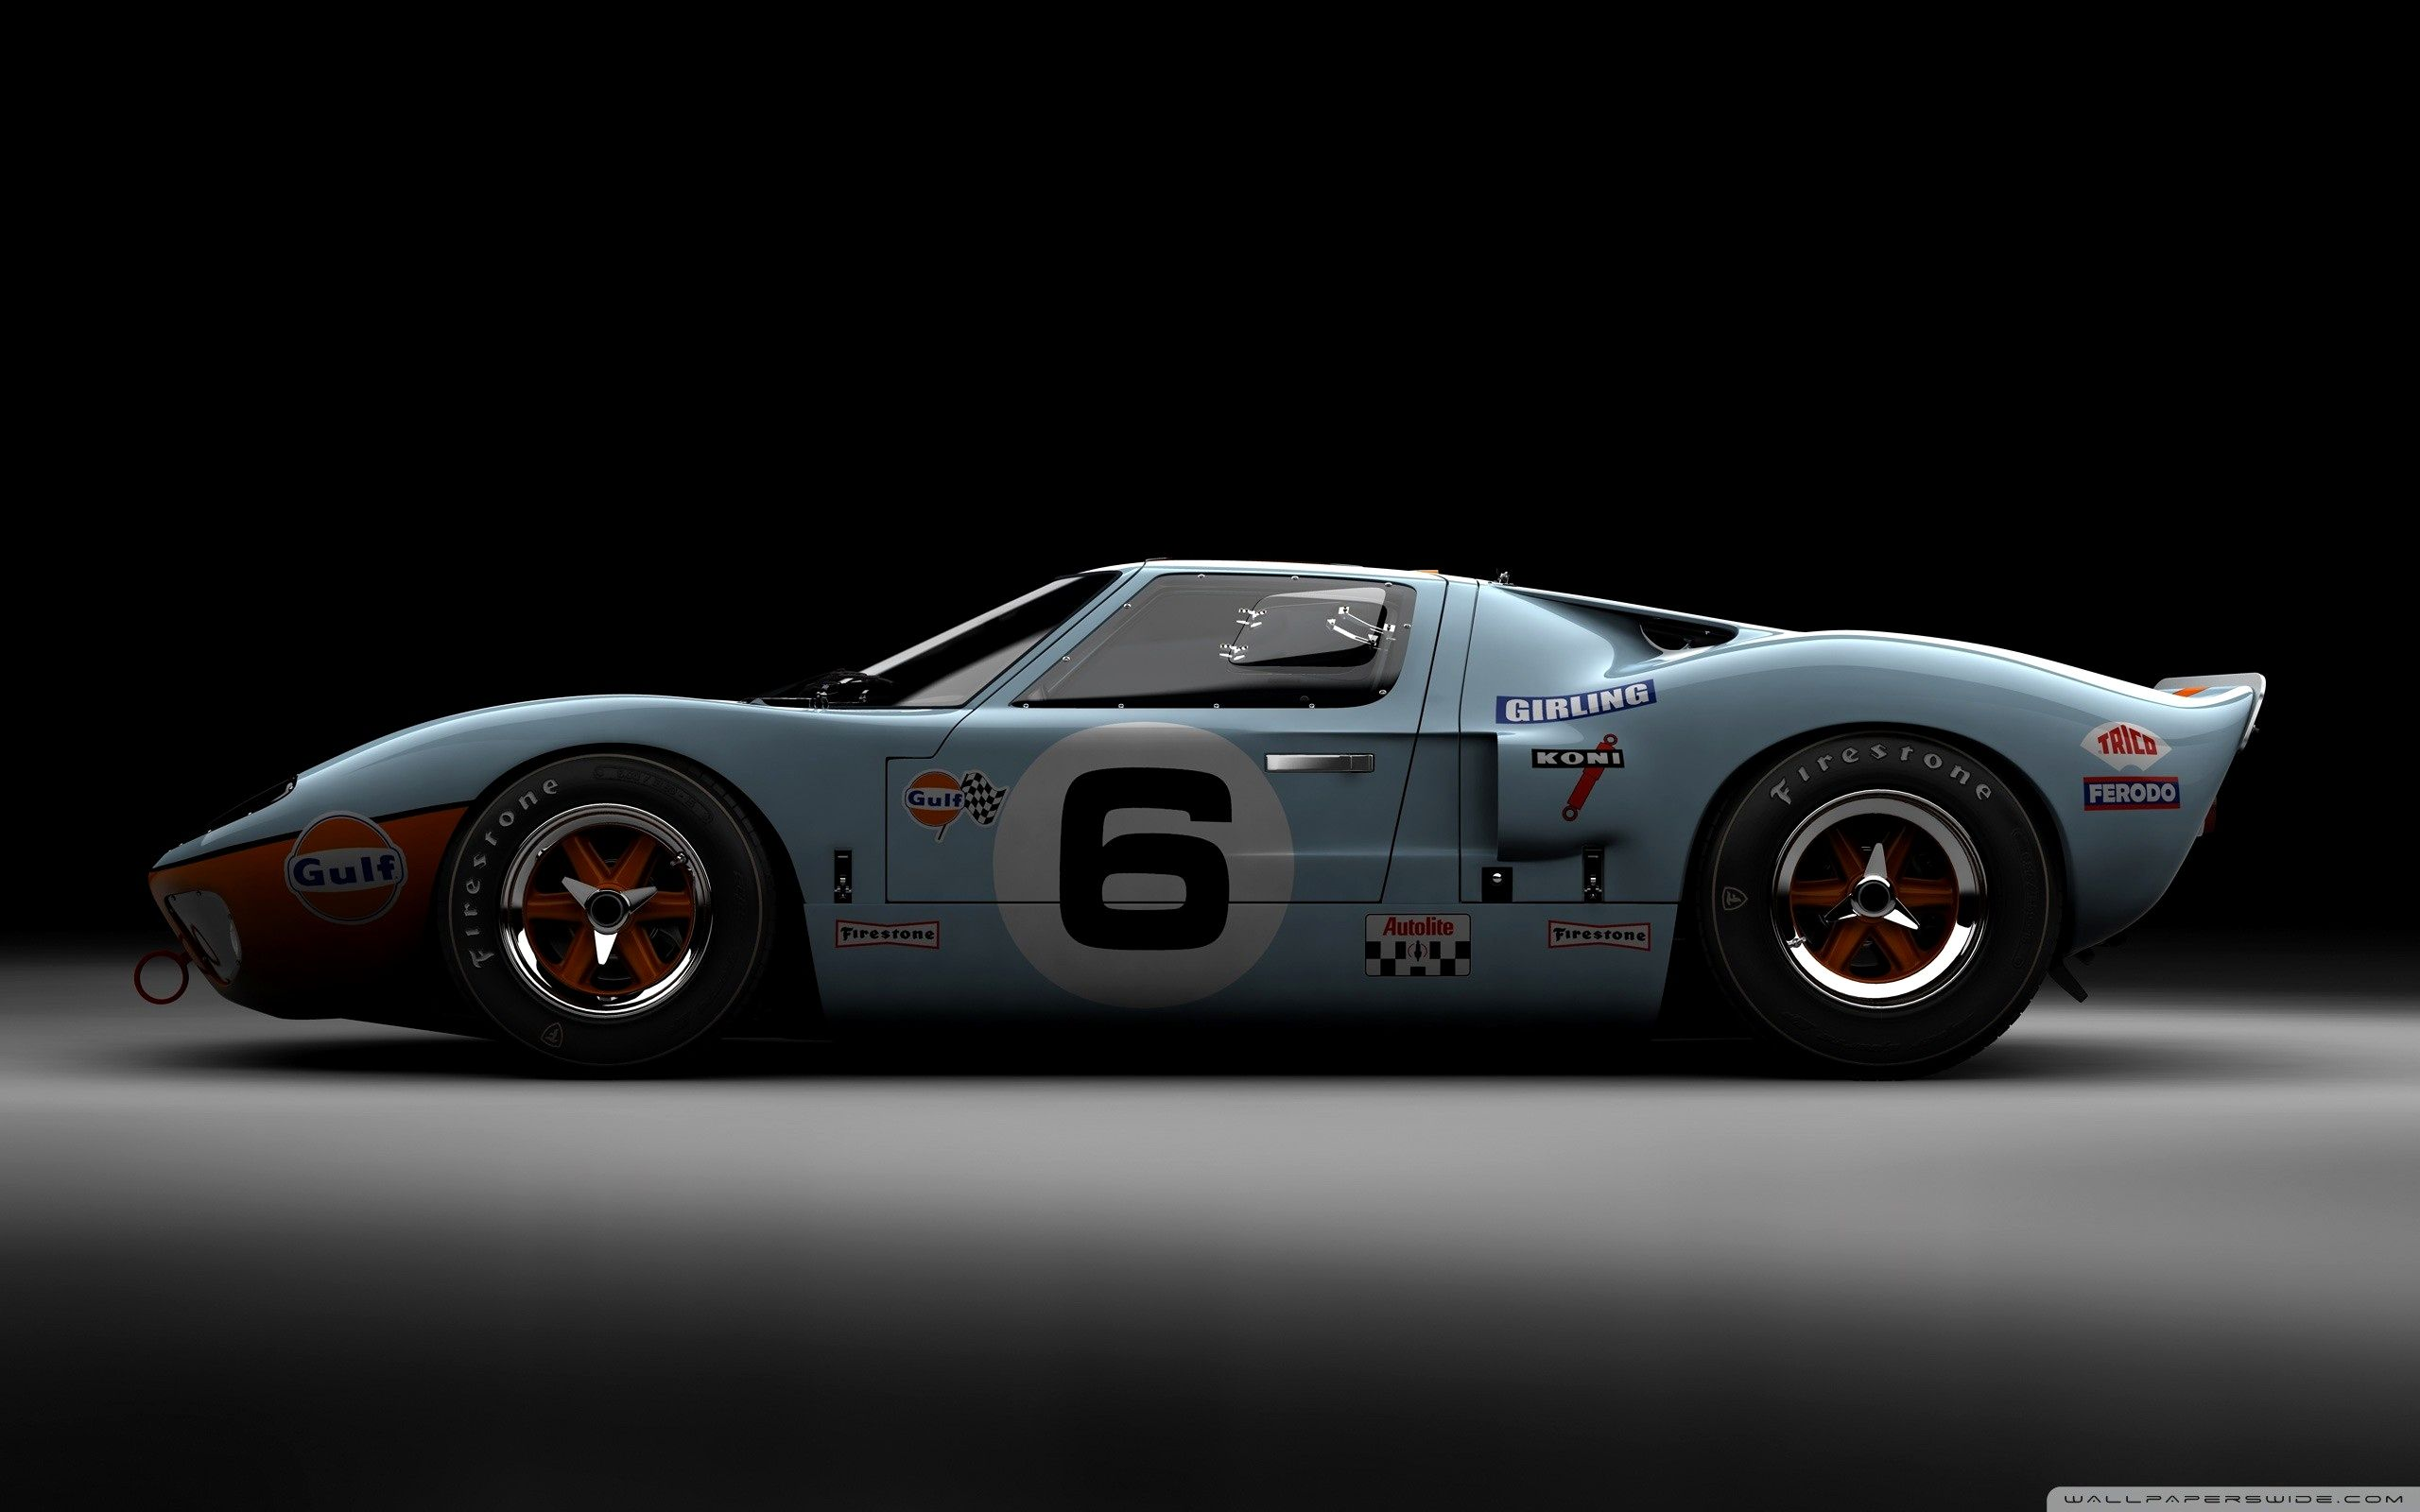 4k Wallpaper Download For Pc Cars Trick Check More At Https